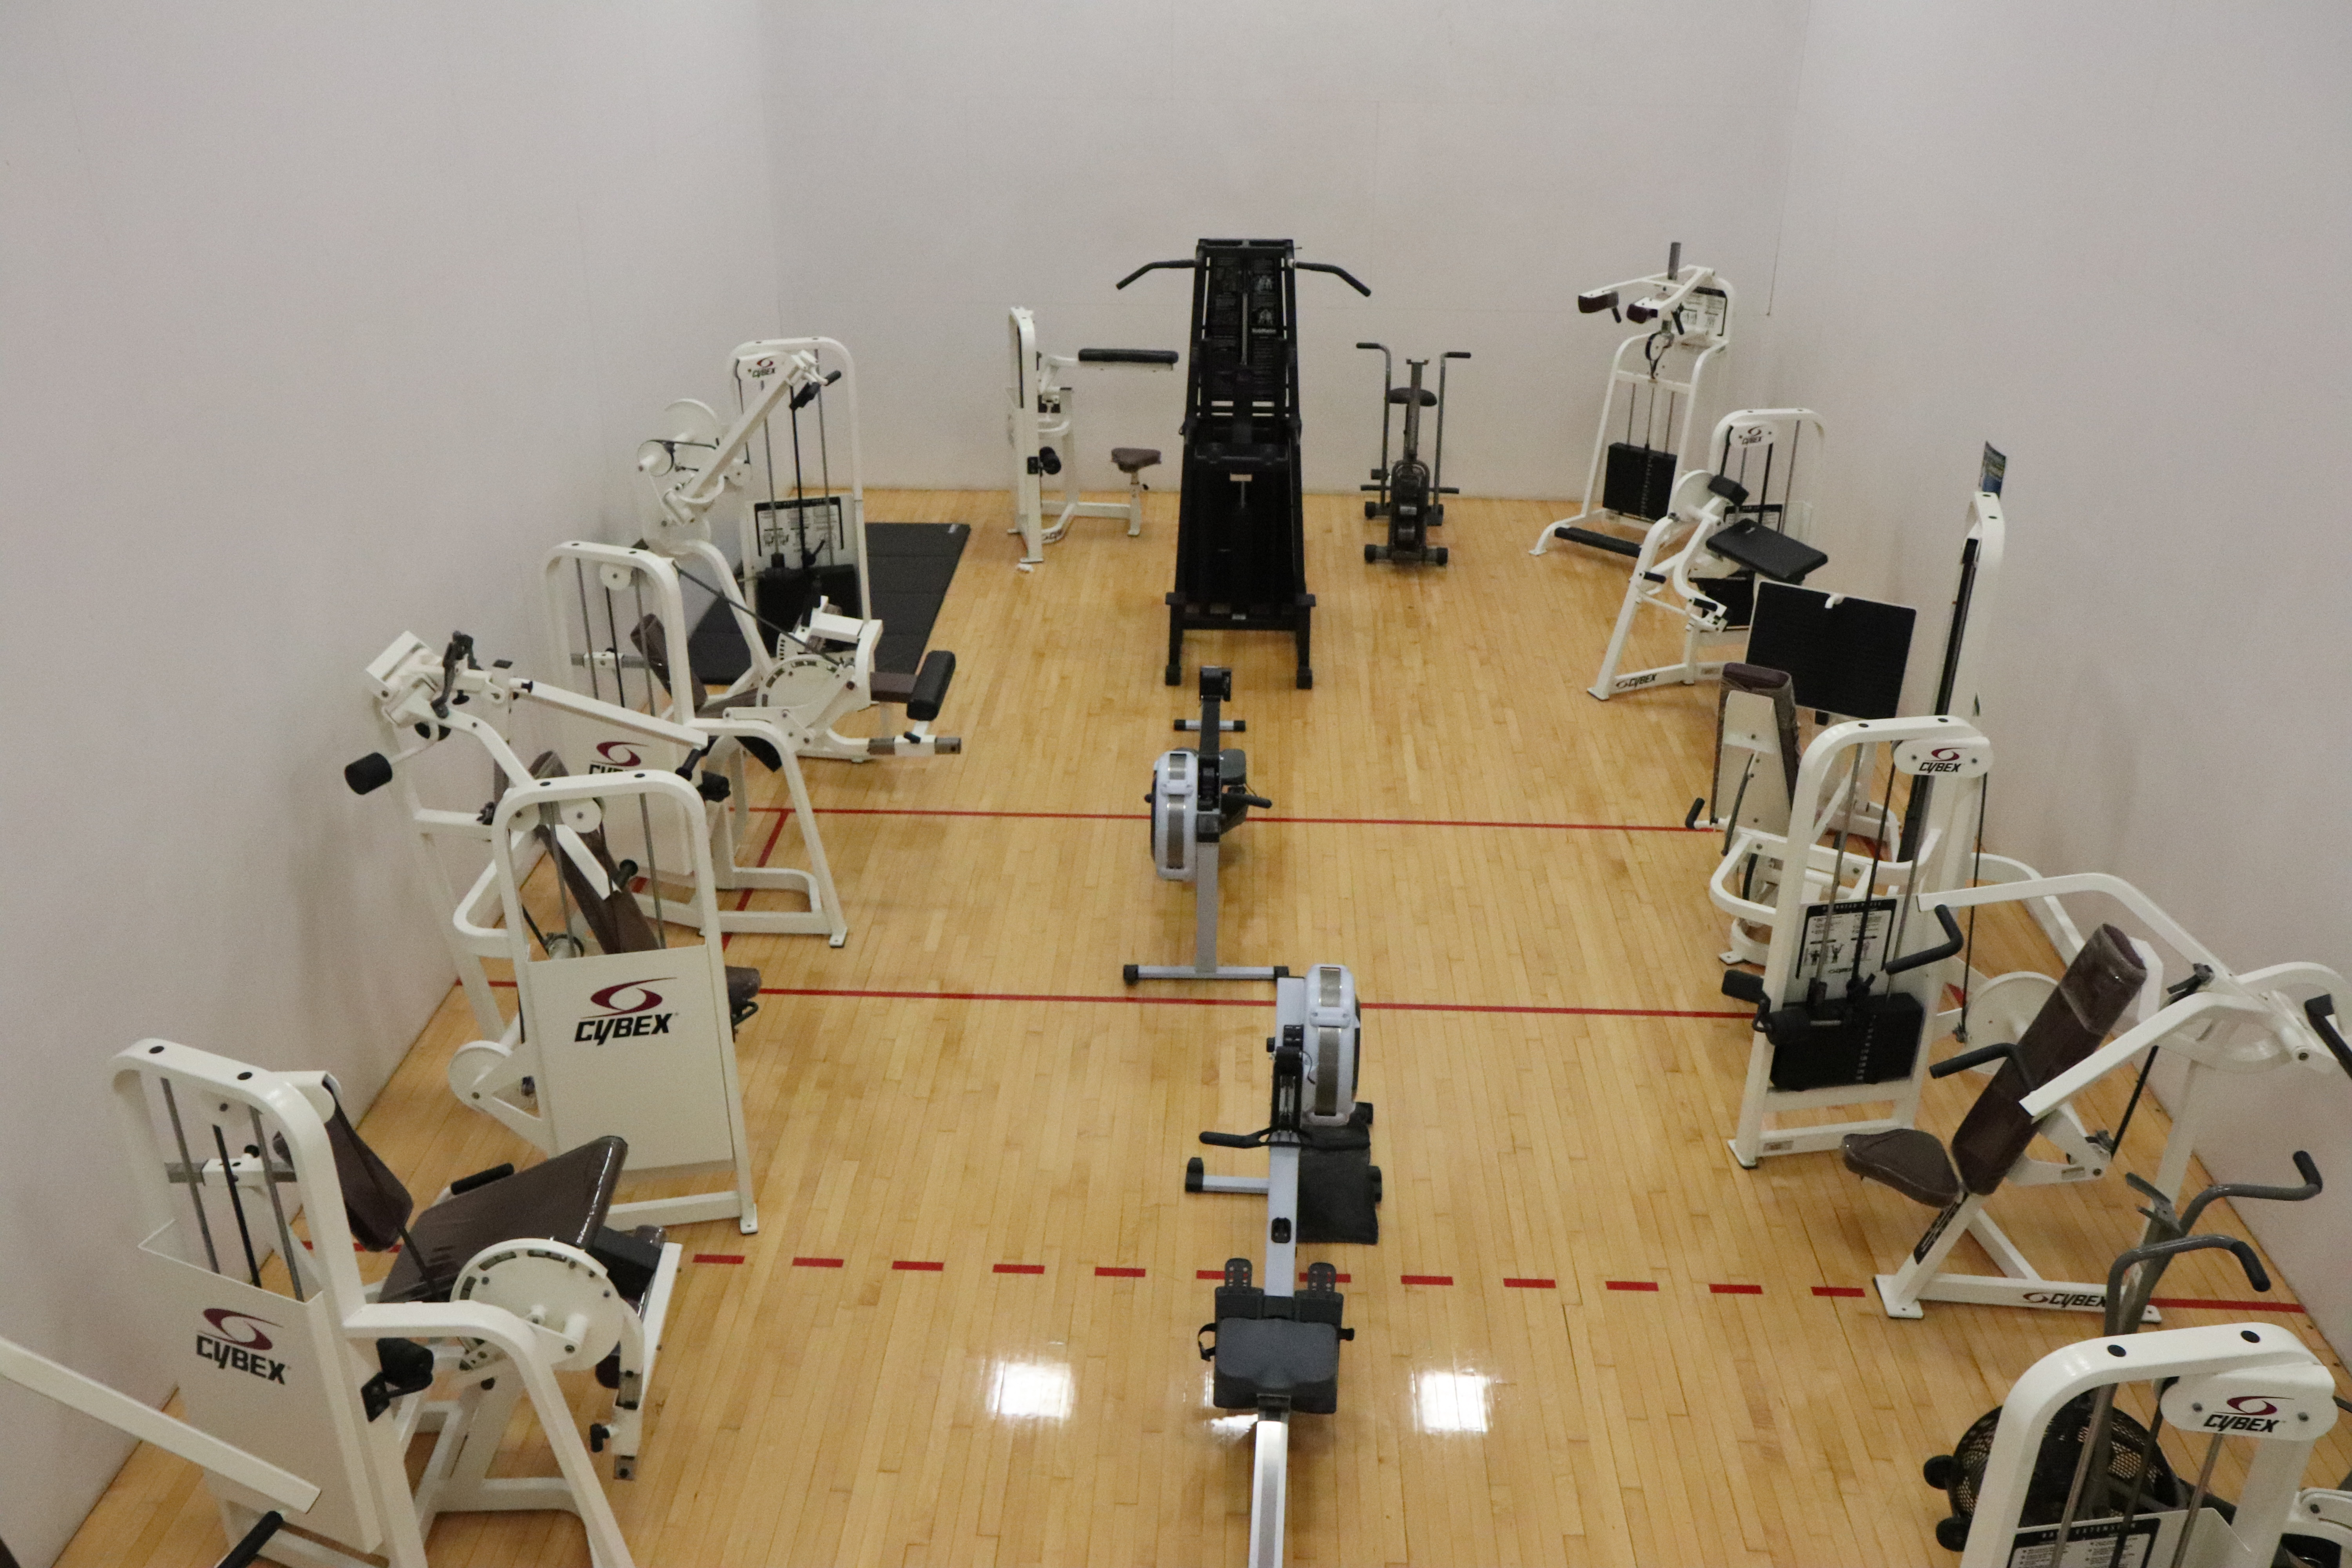 view of the circut room, a room with various exersize equipment on a gym type floor, from a high view.